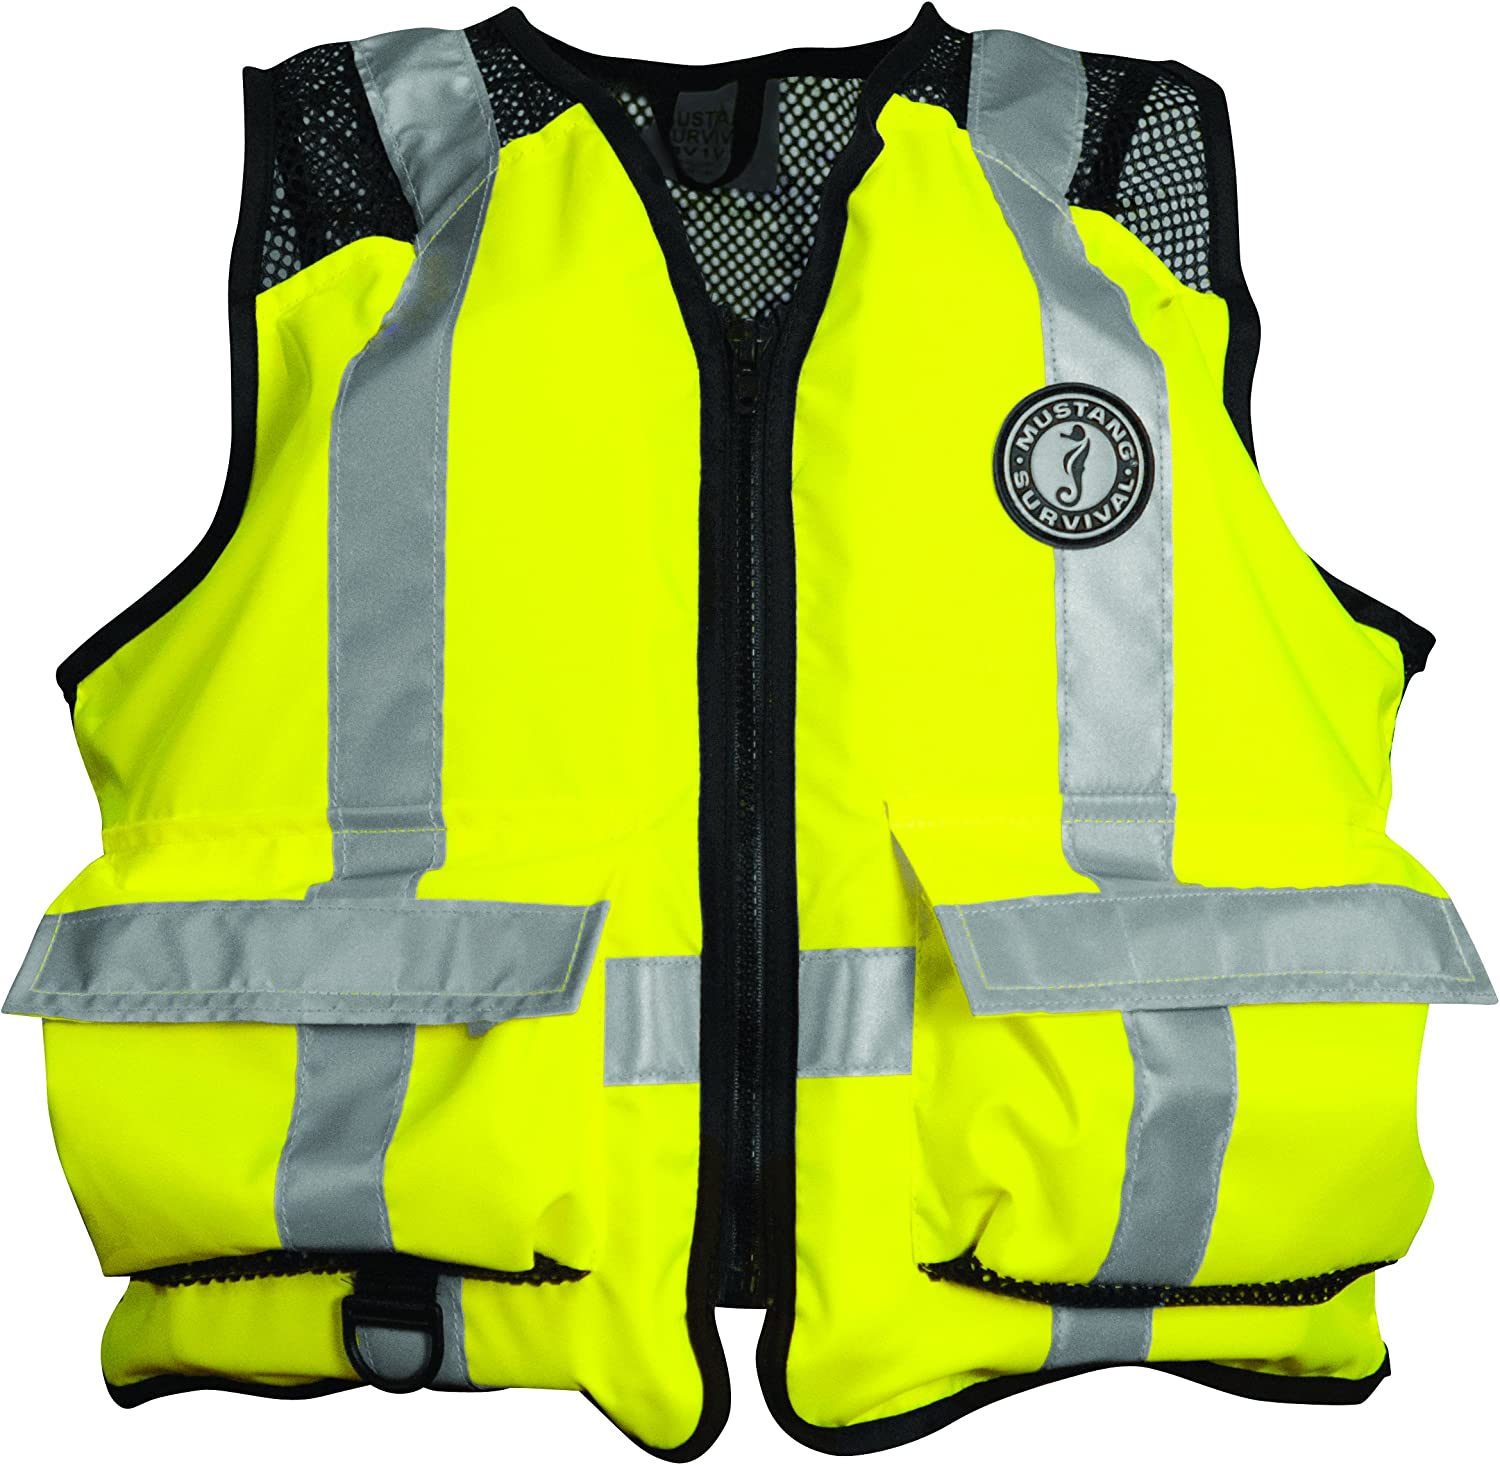 Mustang Survival Corp ANSI Industrial Mesh Vest (ANSI 1072004 Class 1 Compliant), Fluorescent Yellow Green, XxLarge 3XLarge